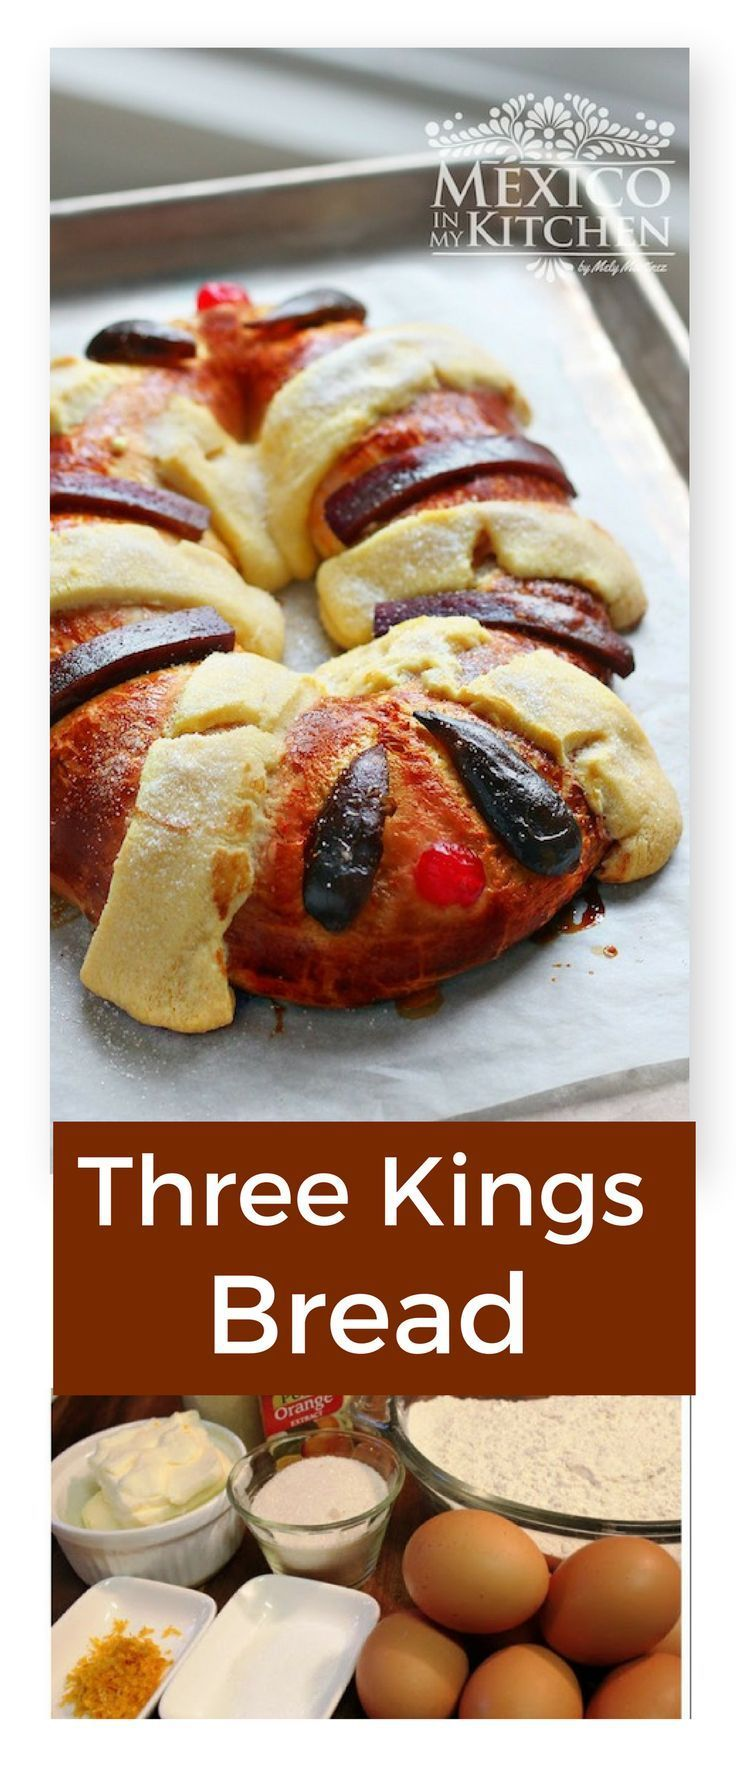 Three Kings Bread / Rosca de Reyes. This is another food that I started making at home some years ago because I couldn't find it here. Nowadays there is a bakery that sells it but the flavors and aromas you get by baking it at home cannot be compared. #recipe #MexicanFood